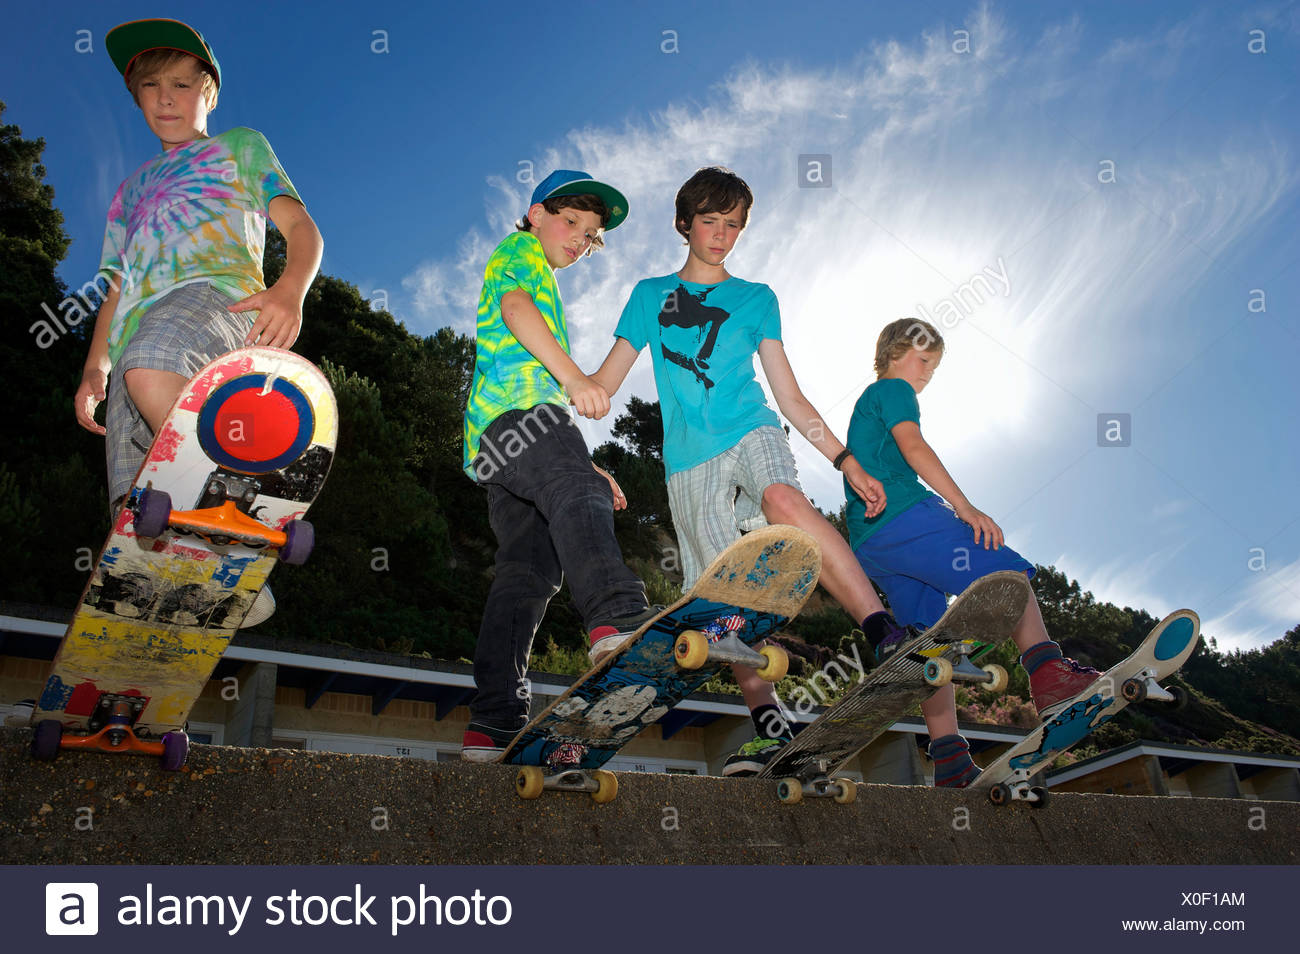 Portrait of four boys on skateboards Stock Photo